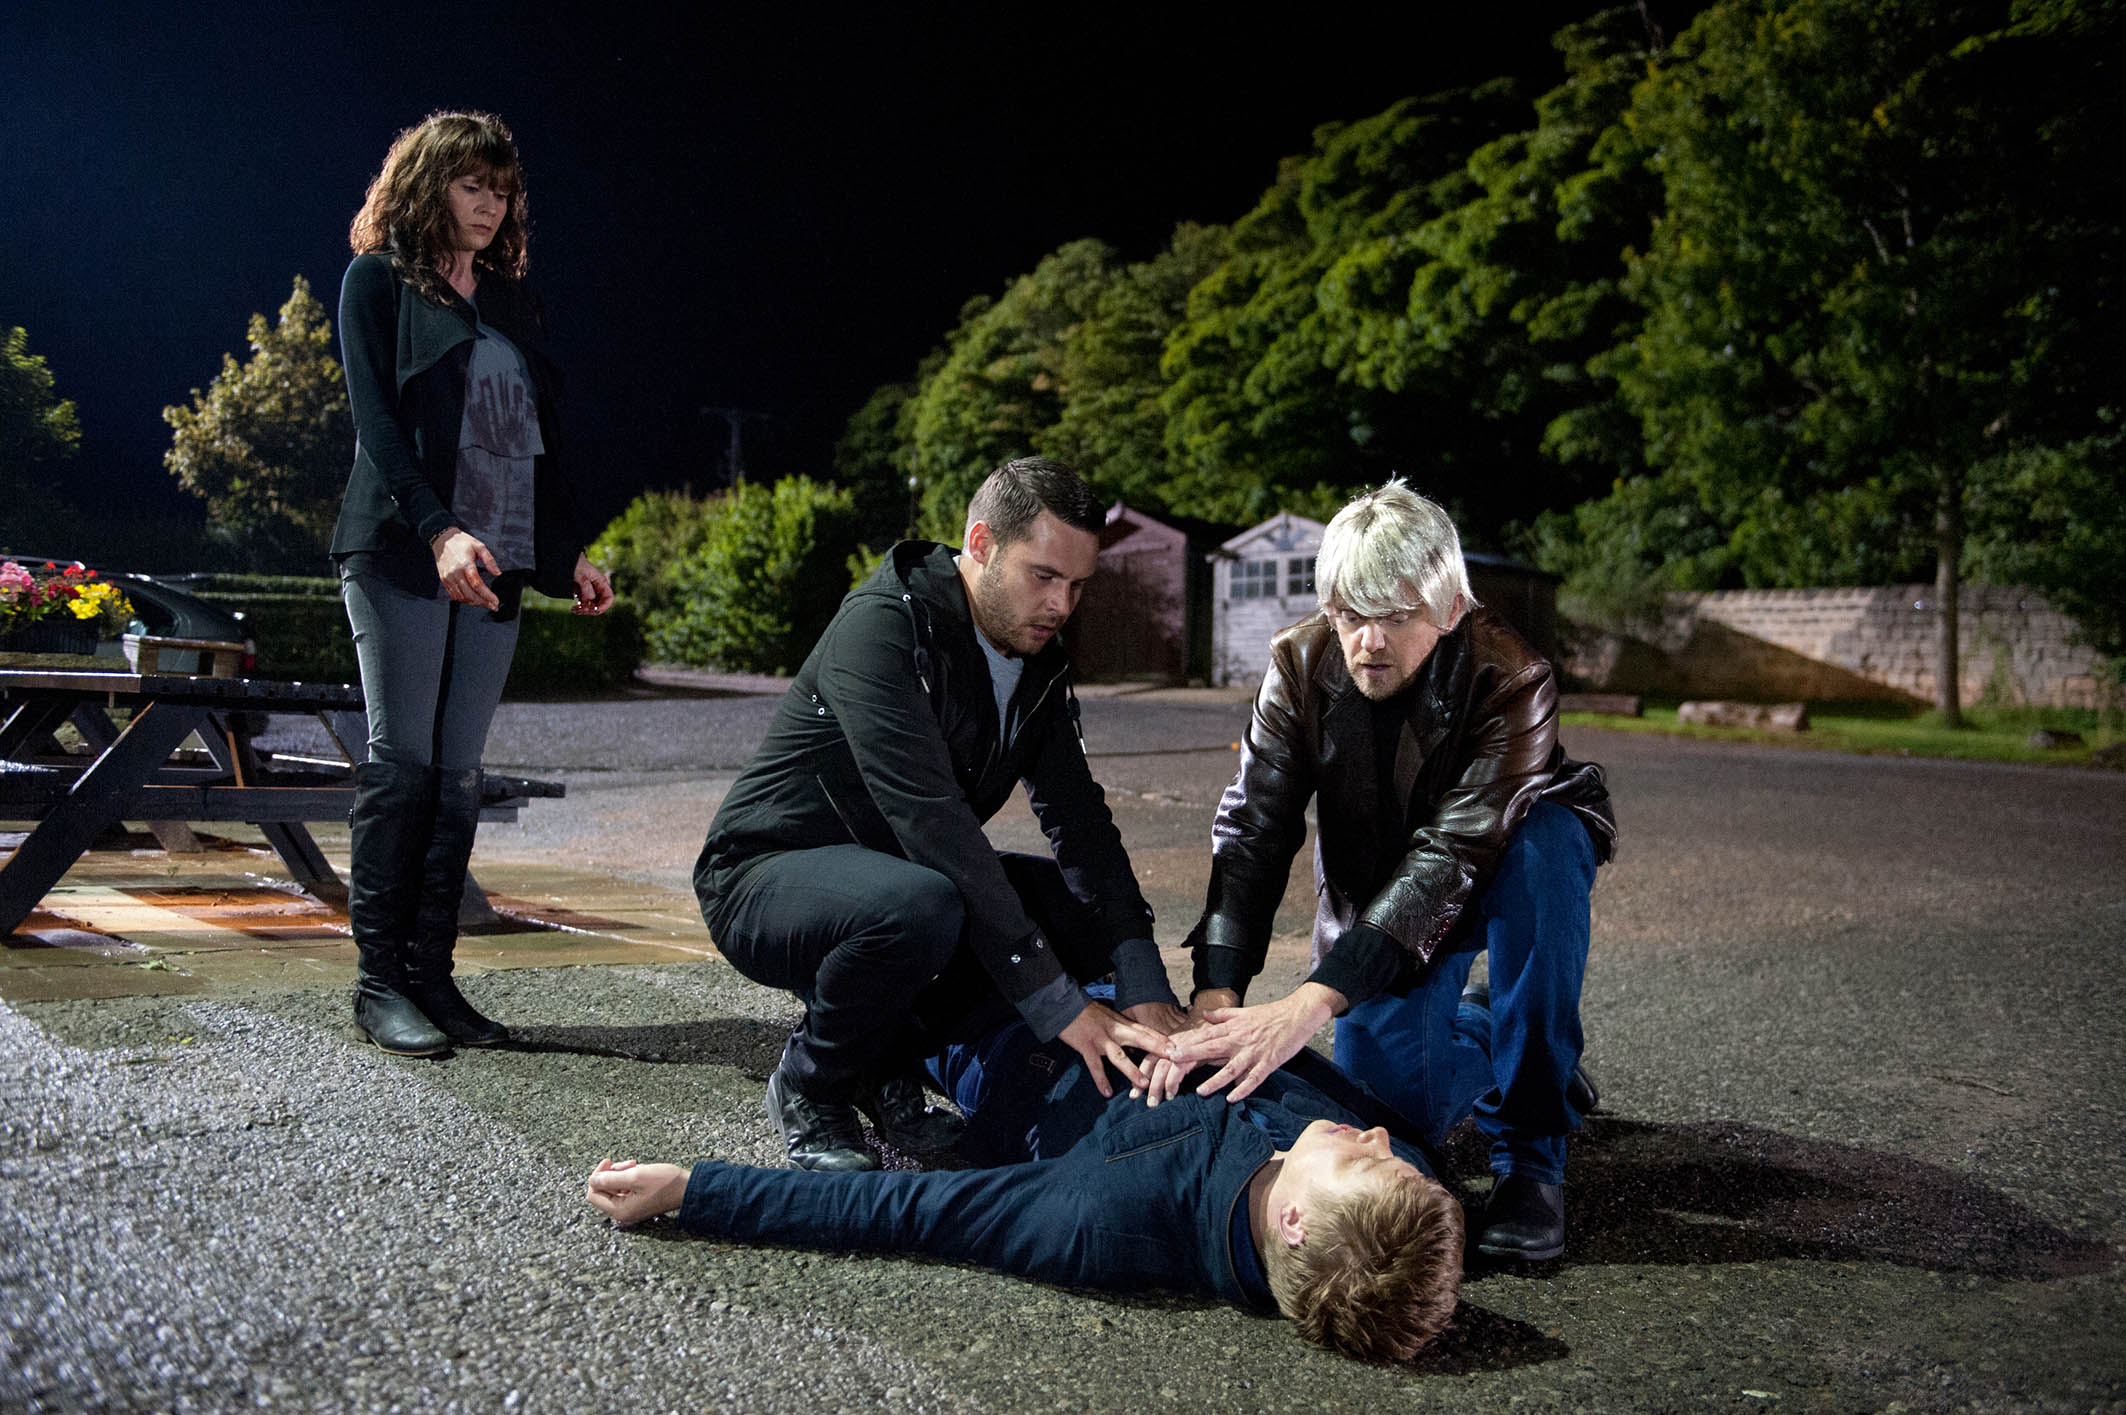 Robert Sugden [RYAN HAWLEY] slumps forward onto Chas Dingle [LUCY PARGETTER] after being shot. She manages to move him off her and stands up shakily, horrified as he bleeds. Lawrence arrives and Dan Spencer [LIAM FOX] jumps into action trying to save Robert. Bob leads a shocked Chas into the pub as the paramedics lift Robert into the ambulance. Lawrence calls Chrissie and leaves her an urgent message. Out walking on a road, Lachlan throws something into the hedge when he sees Lawrence's car and is visibly shaken when he's told that Robert's been shot. At the hospital, it's clear Robert's life hangs by a thread as a team of medics stand over him as Victoria Barton [ISOBEL HODGINS] tells Diane Sugden [ELIZABETH ESTENSEN] they should have stopped Andy. Robert flat lines and is rushed into surgery Picture contact: david.crook@itv.com on 0161 952 6214 This photograph is (C) ITV Plc and can only be reproduced for editorial purposes directly in connection with the programme or event mentioned above, or ITV plc. Once made available by ITV plc Picture Desk, this photograph can be reproduced once only up until the transmission [TX] date and no reproduction fee will be charged. Any subsequent usage may incur a fee. This photograph must not be manipulated [excluding basic cropping] in a manner which alters the visual appearance of the person photographed deemed detrimental or inappropriate by ITV plc Picture Desk. This photograph must not be syndicated to any other company, publication or website, or permanently archived, without the express written permission of ITV Plc Picture Desk. Full Terms and conditions are available on the website www.itvpictures.com